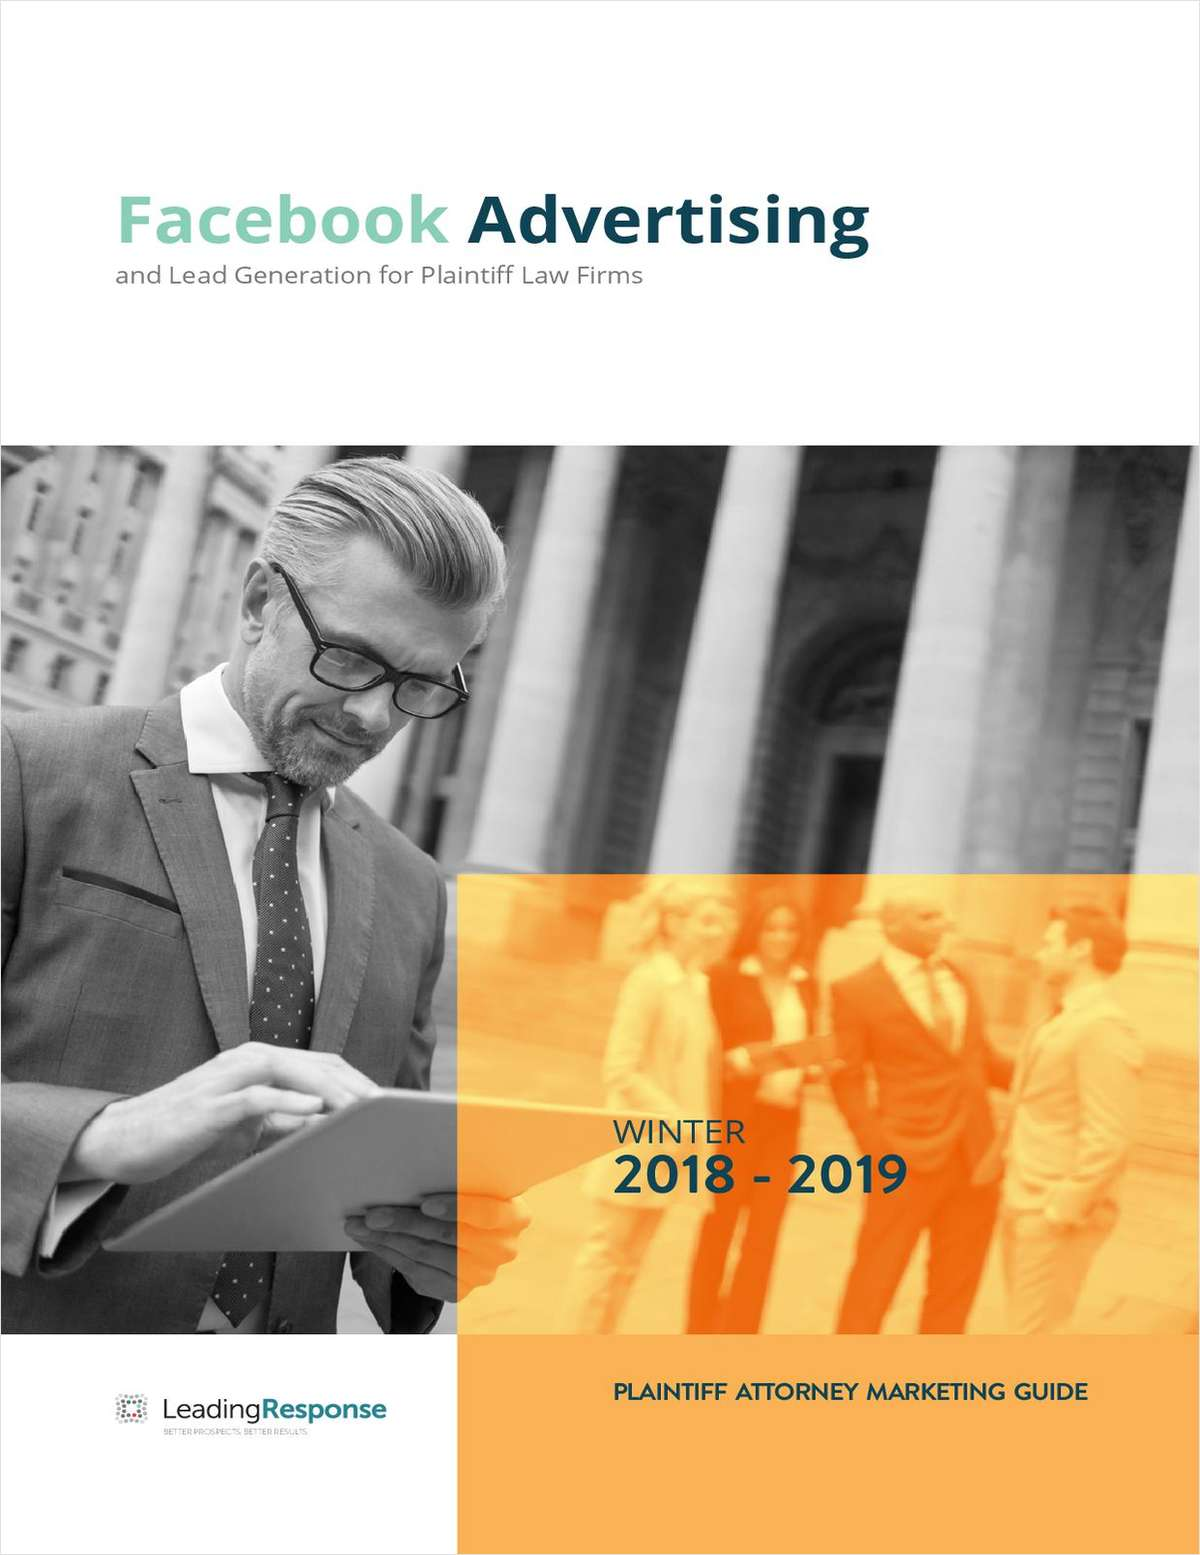 Facebook Advertising & Lead Generation Guide for Plaintiff Law Firms